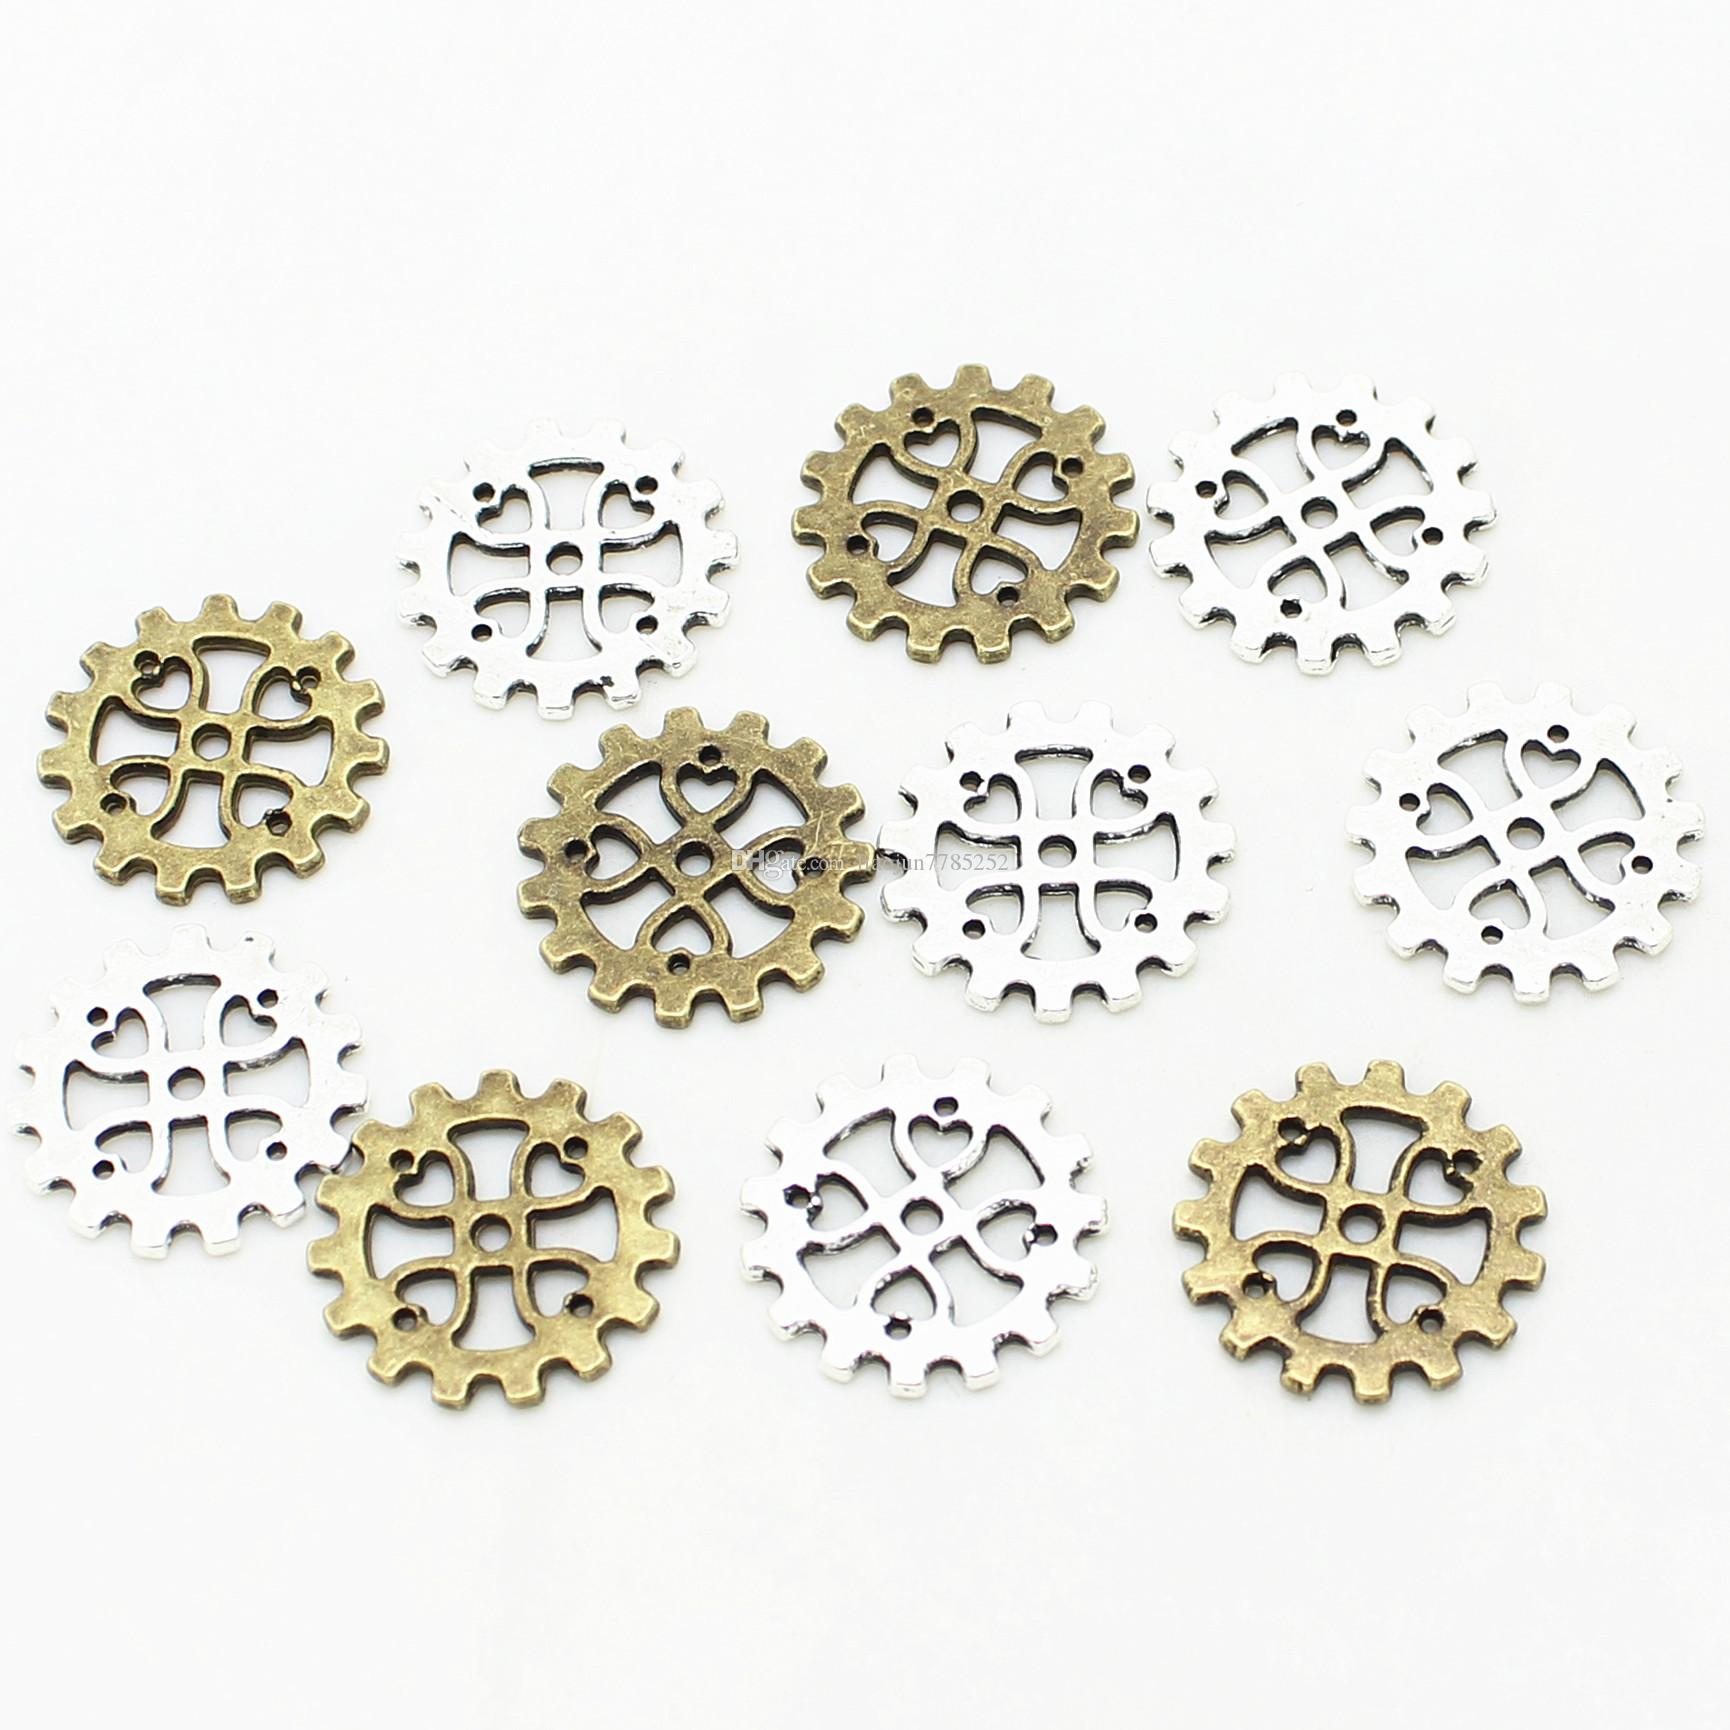 Sweet Bell Min order 50pcs 18mm gears Vintage Zinc Alloy Mix Gear Charm Jewelry Pendant Findings for Jewelry Making D1031